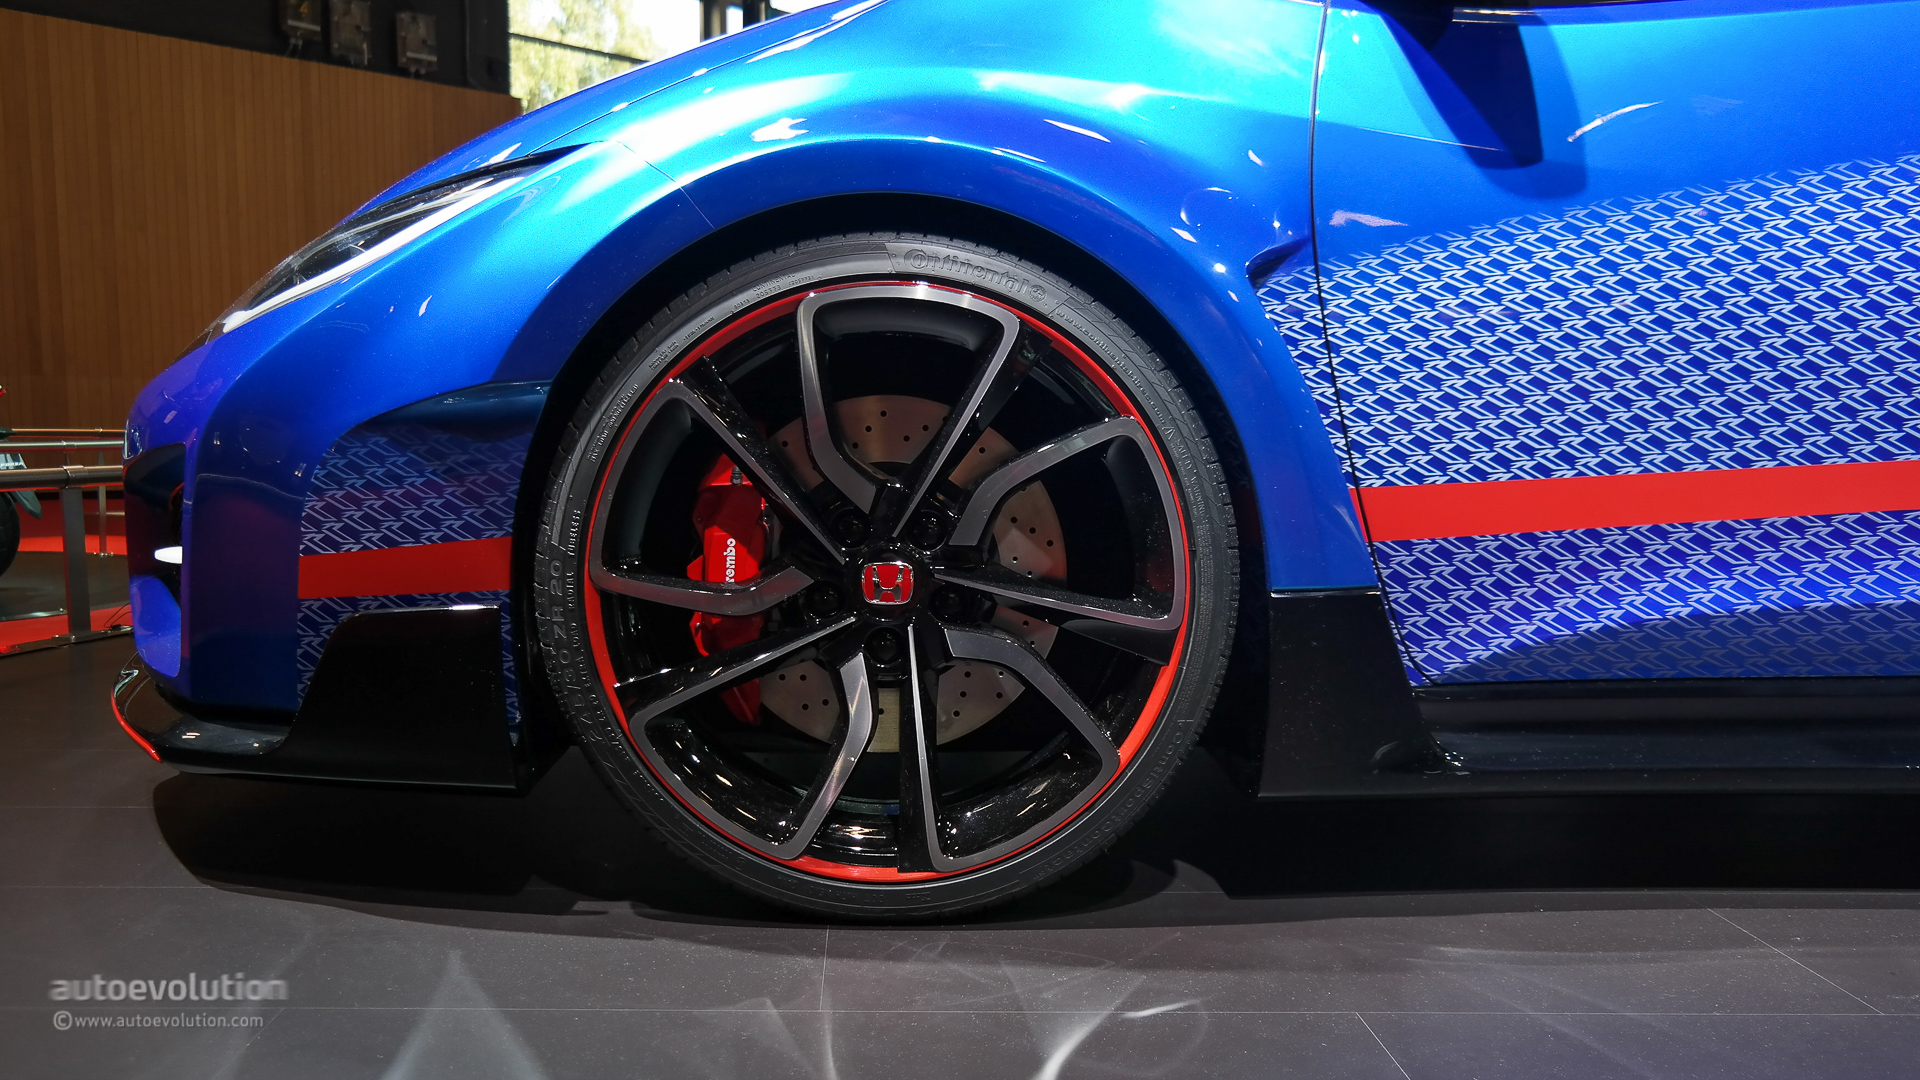 Civic Type R 2016 >> Next Honda Civic Type R Coming to the US in 2016? - autoevolution